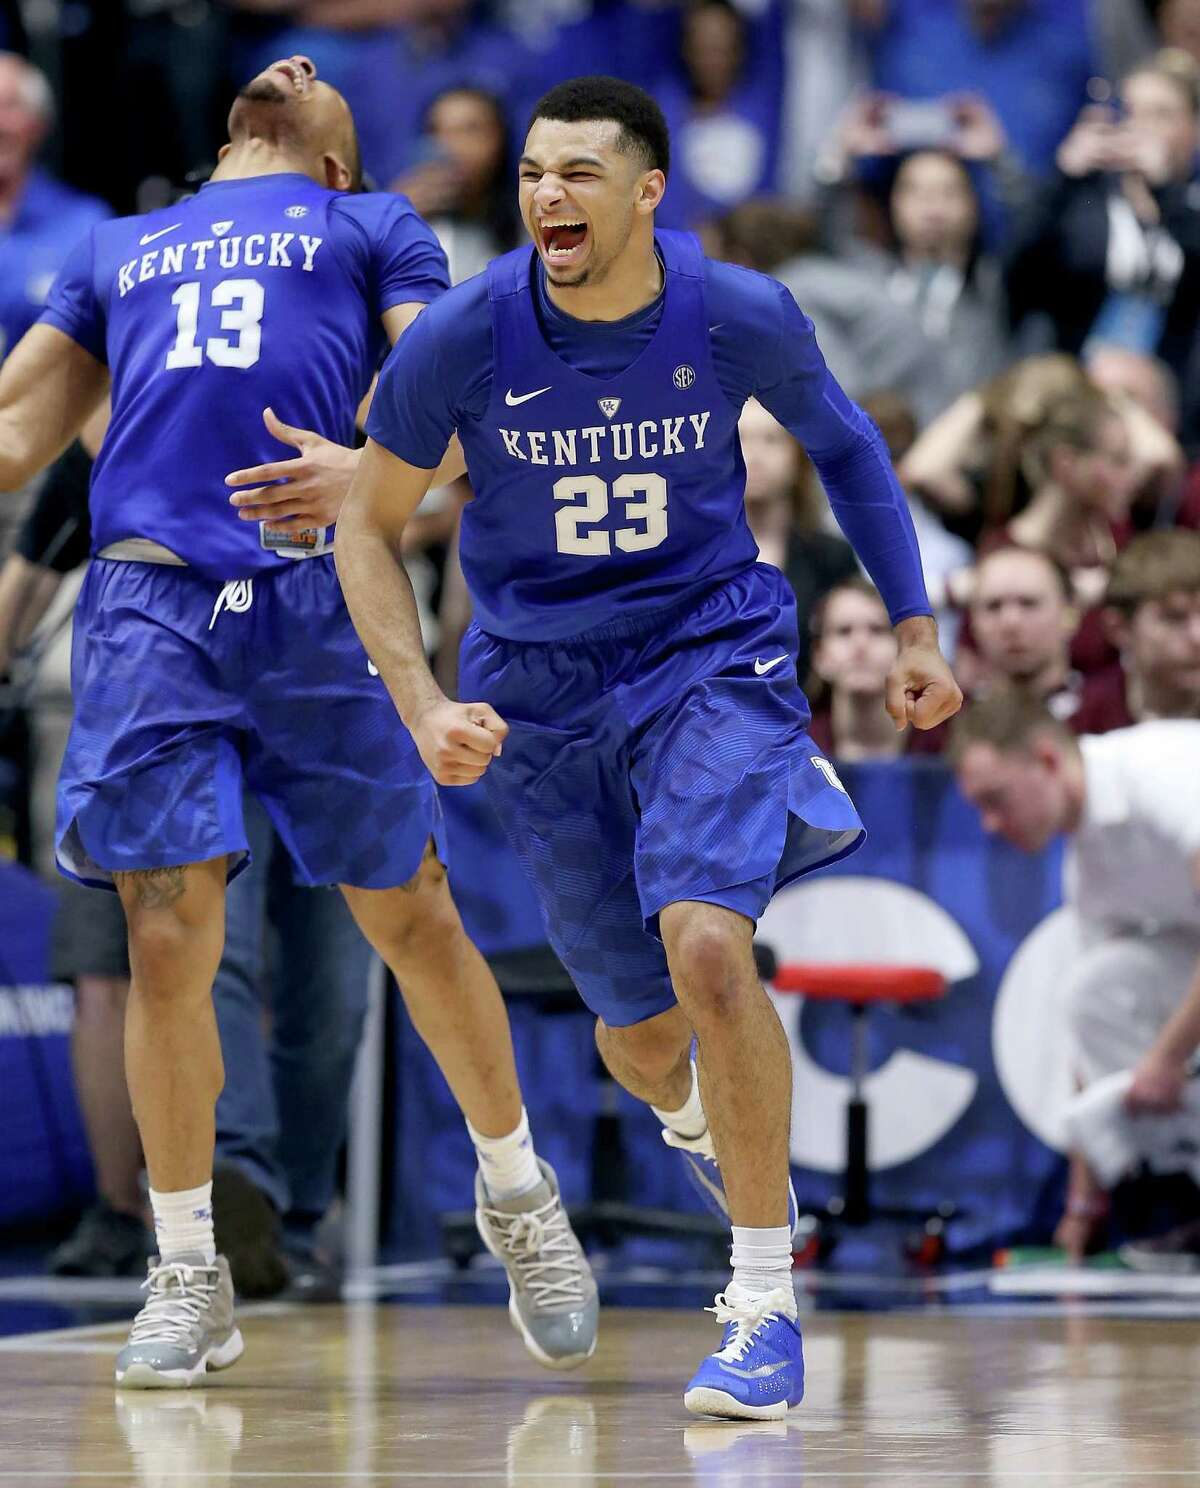 NASHVILLE, TN - MARCH 13: Jamal Murray #23 of the Kentucky Wildcats celebrates after the 82-77 OT win over the Texas A&M Aggies in the Championship Game of the SEC Basketball Tournament at Bridgestone Arena on March 13, 2016 in Nashville, Tennessee.